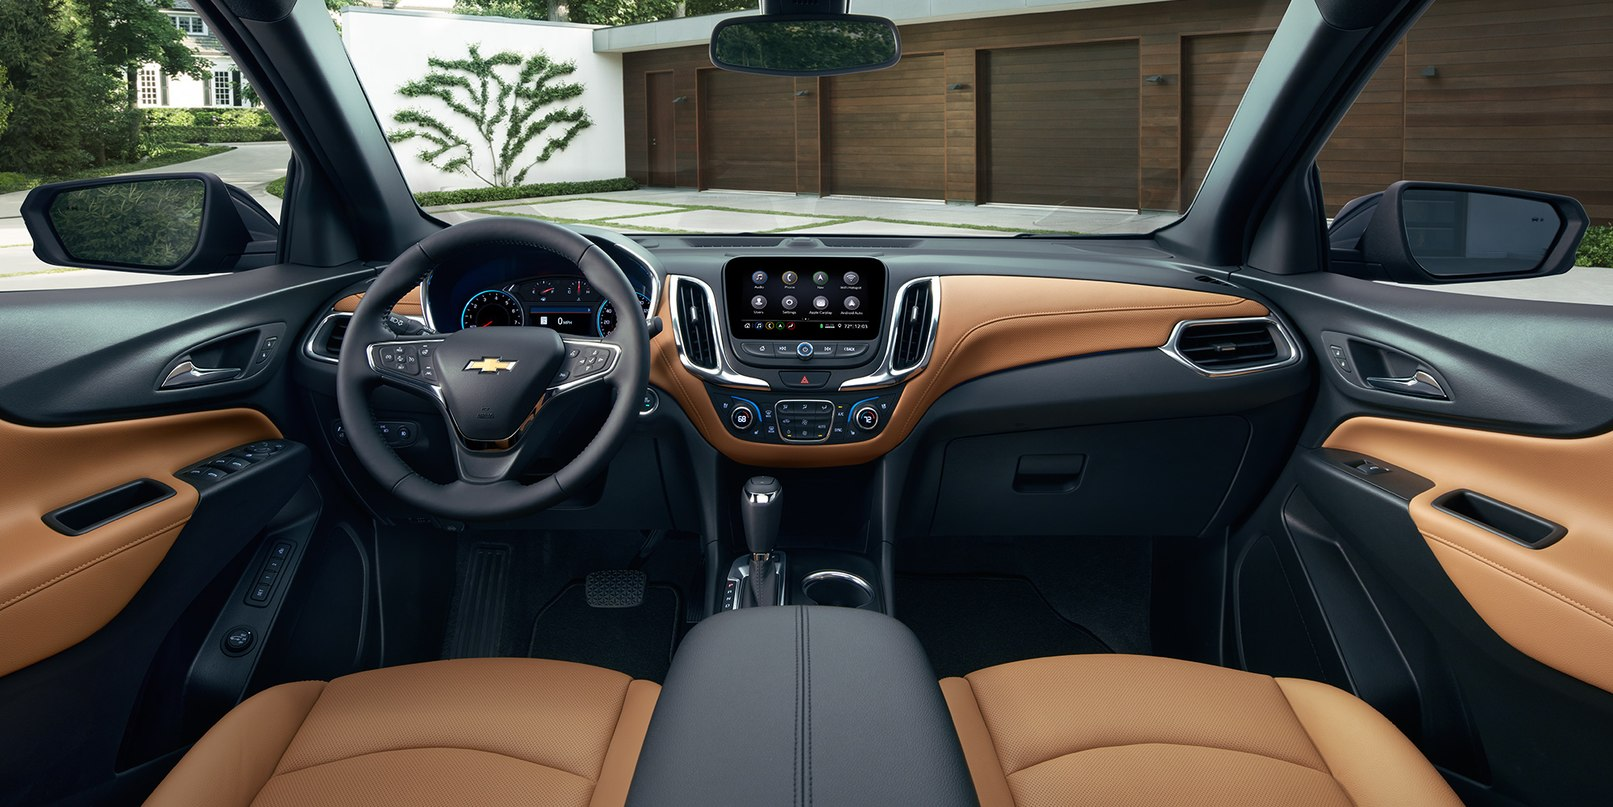 Interior of the 2019 Chevrolet Equionx